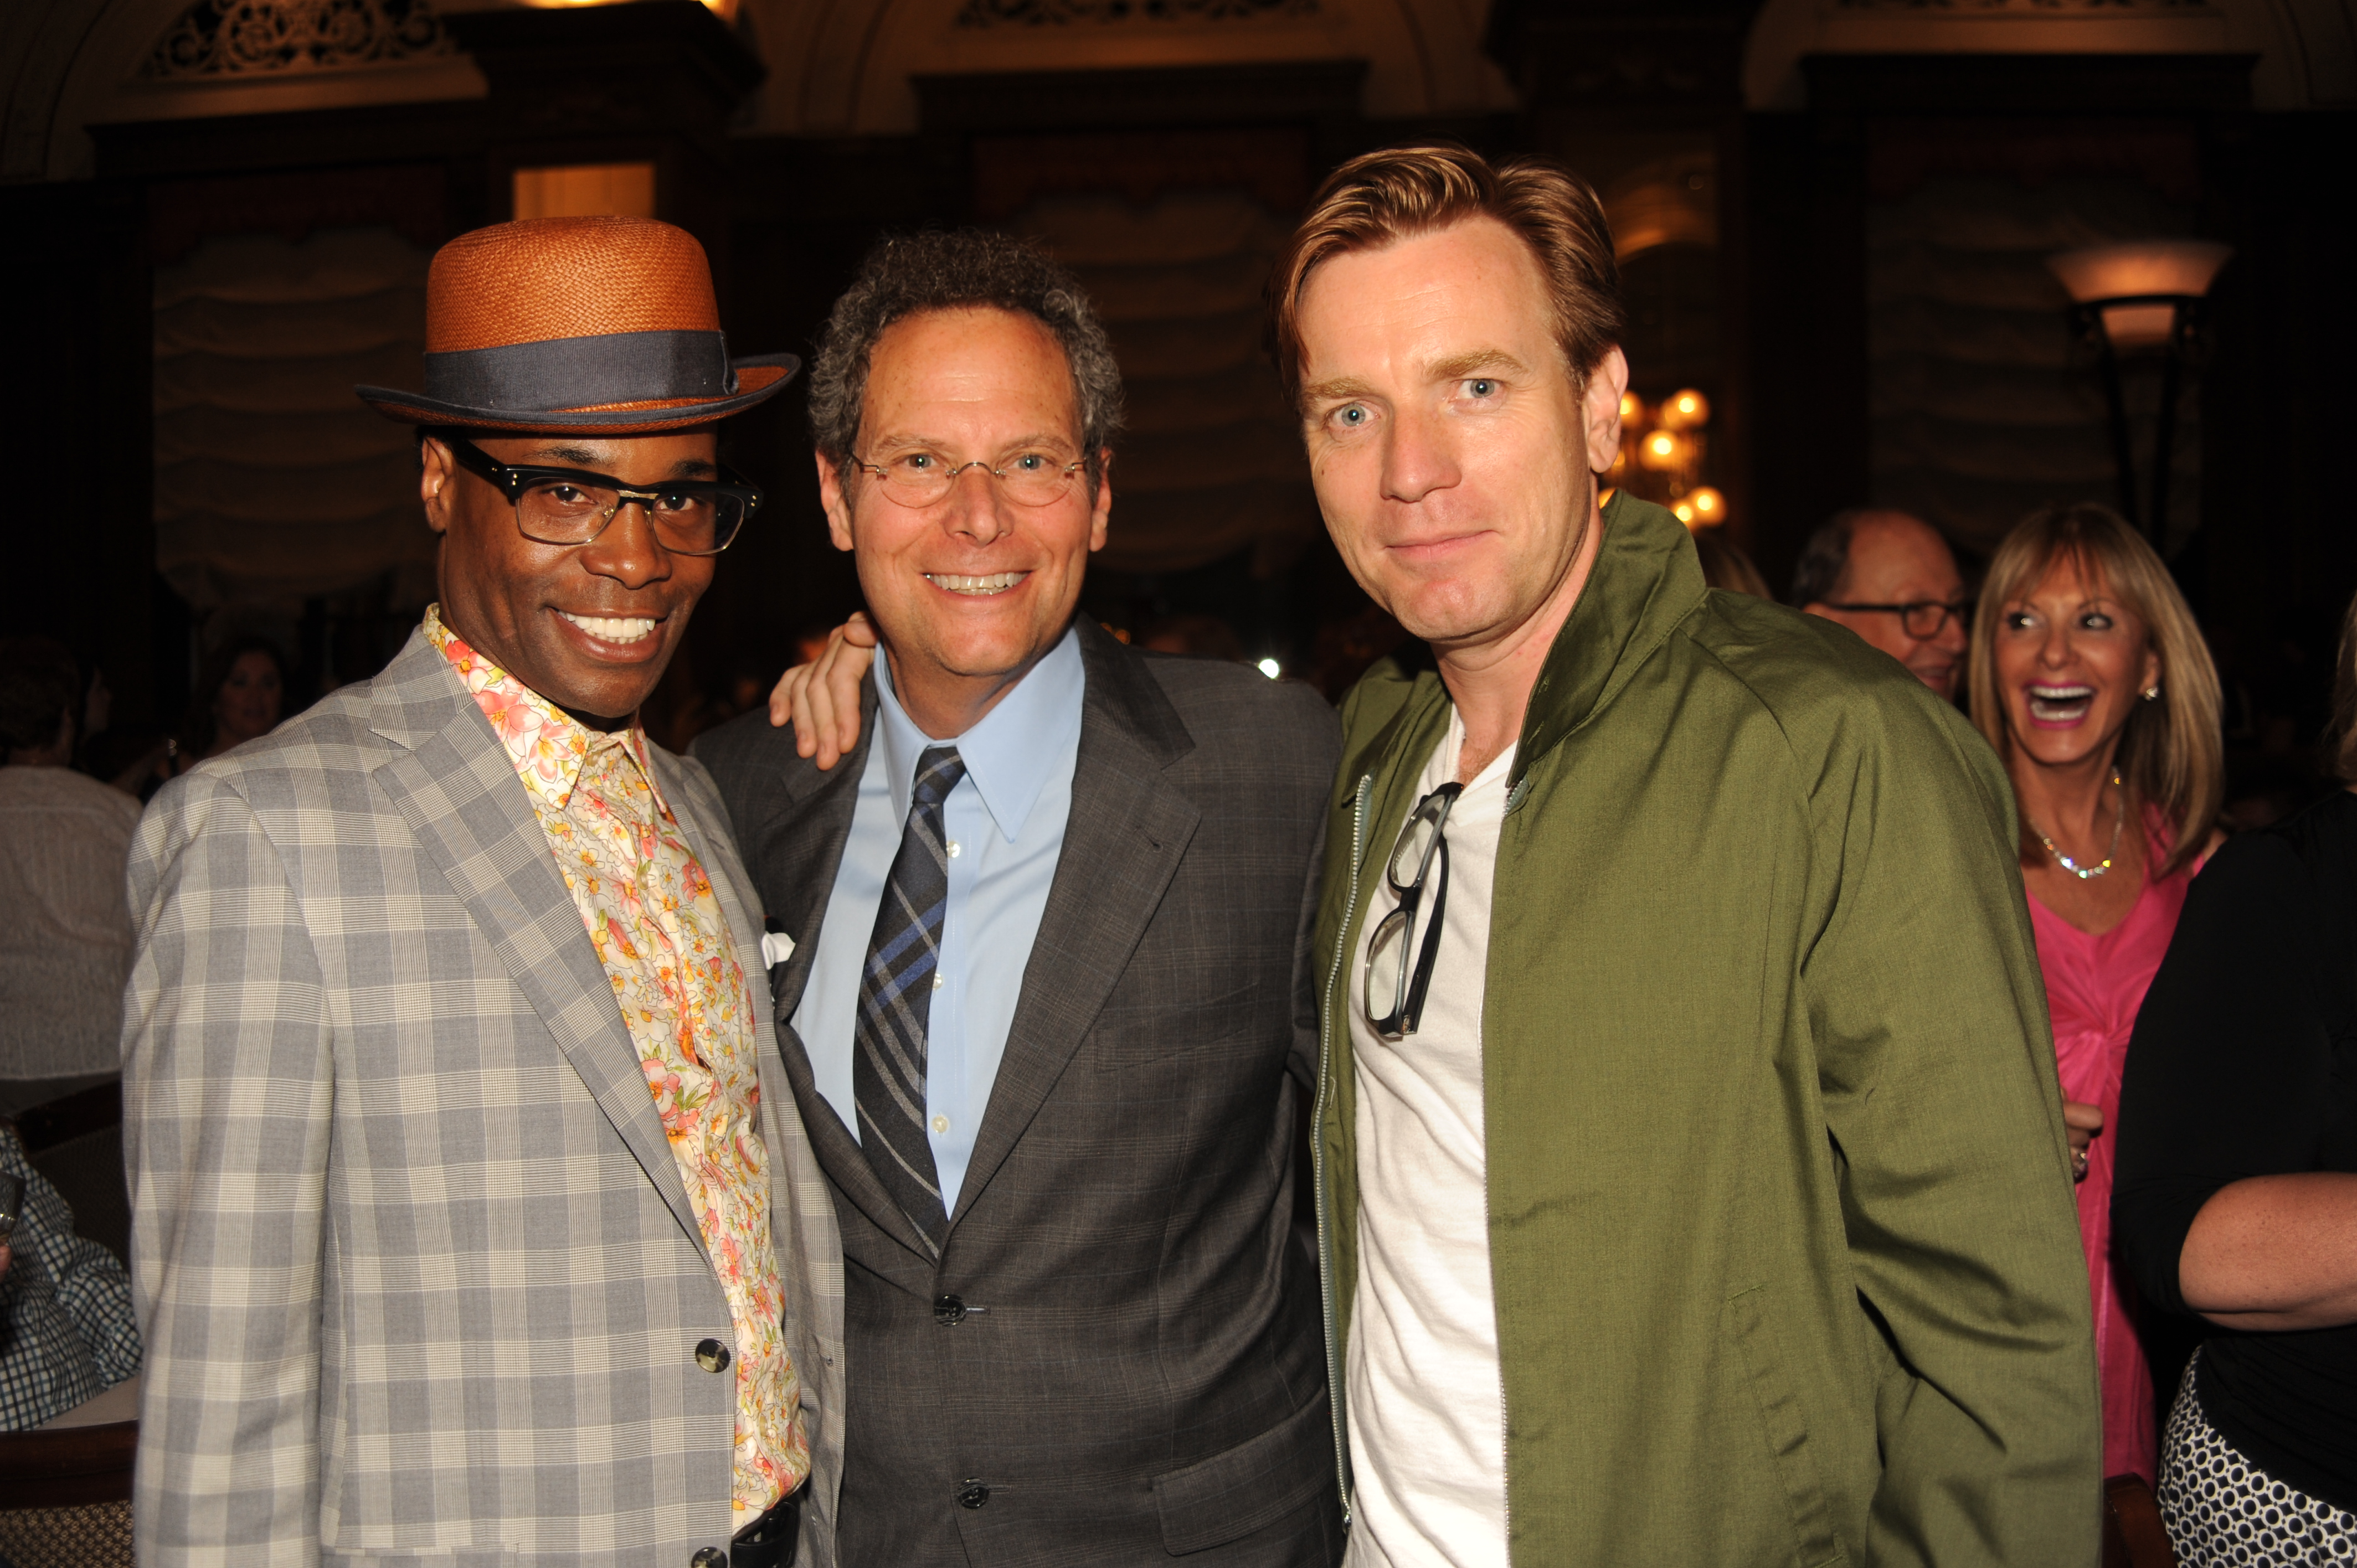 Pittsburgh come alive at 'Kinky Boots' after party